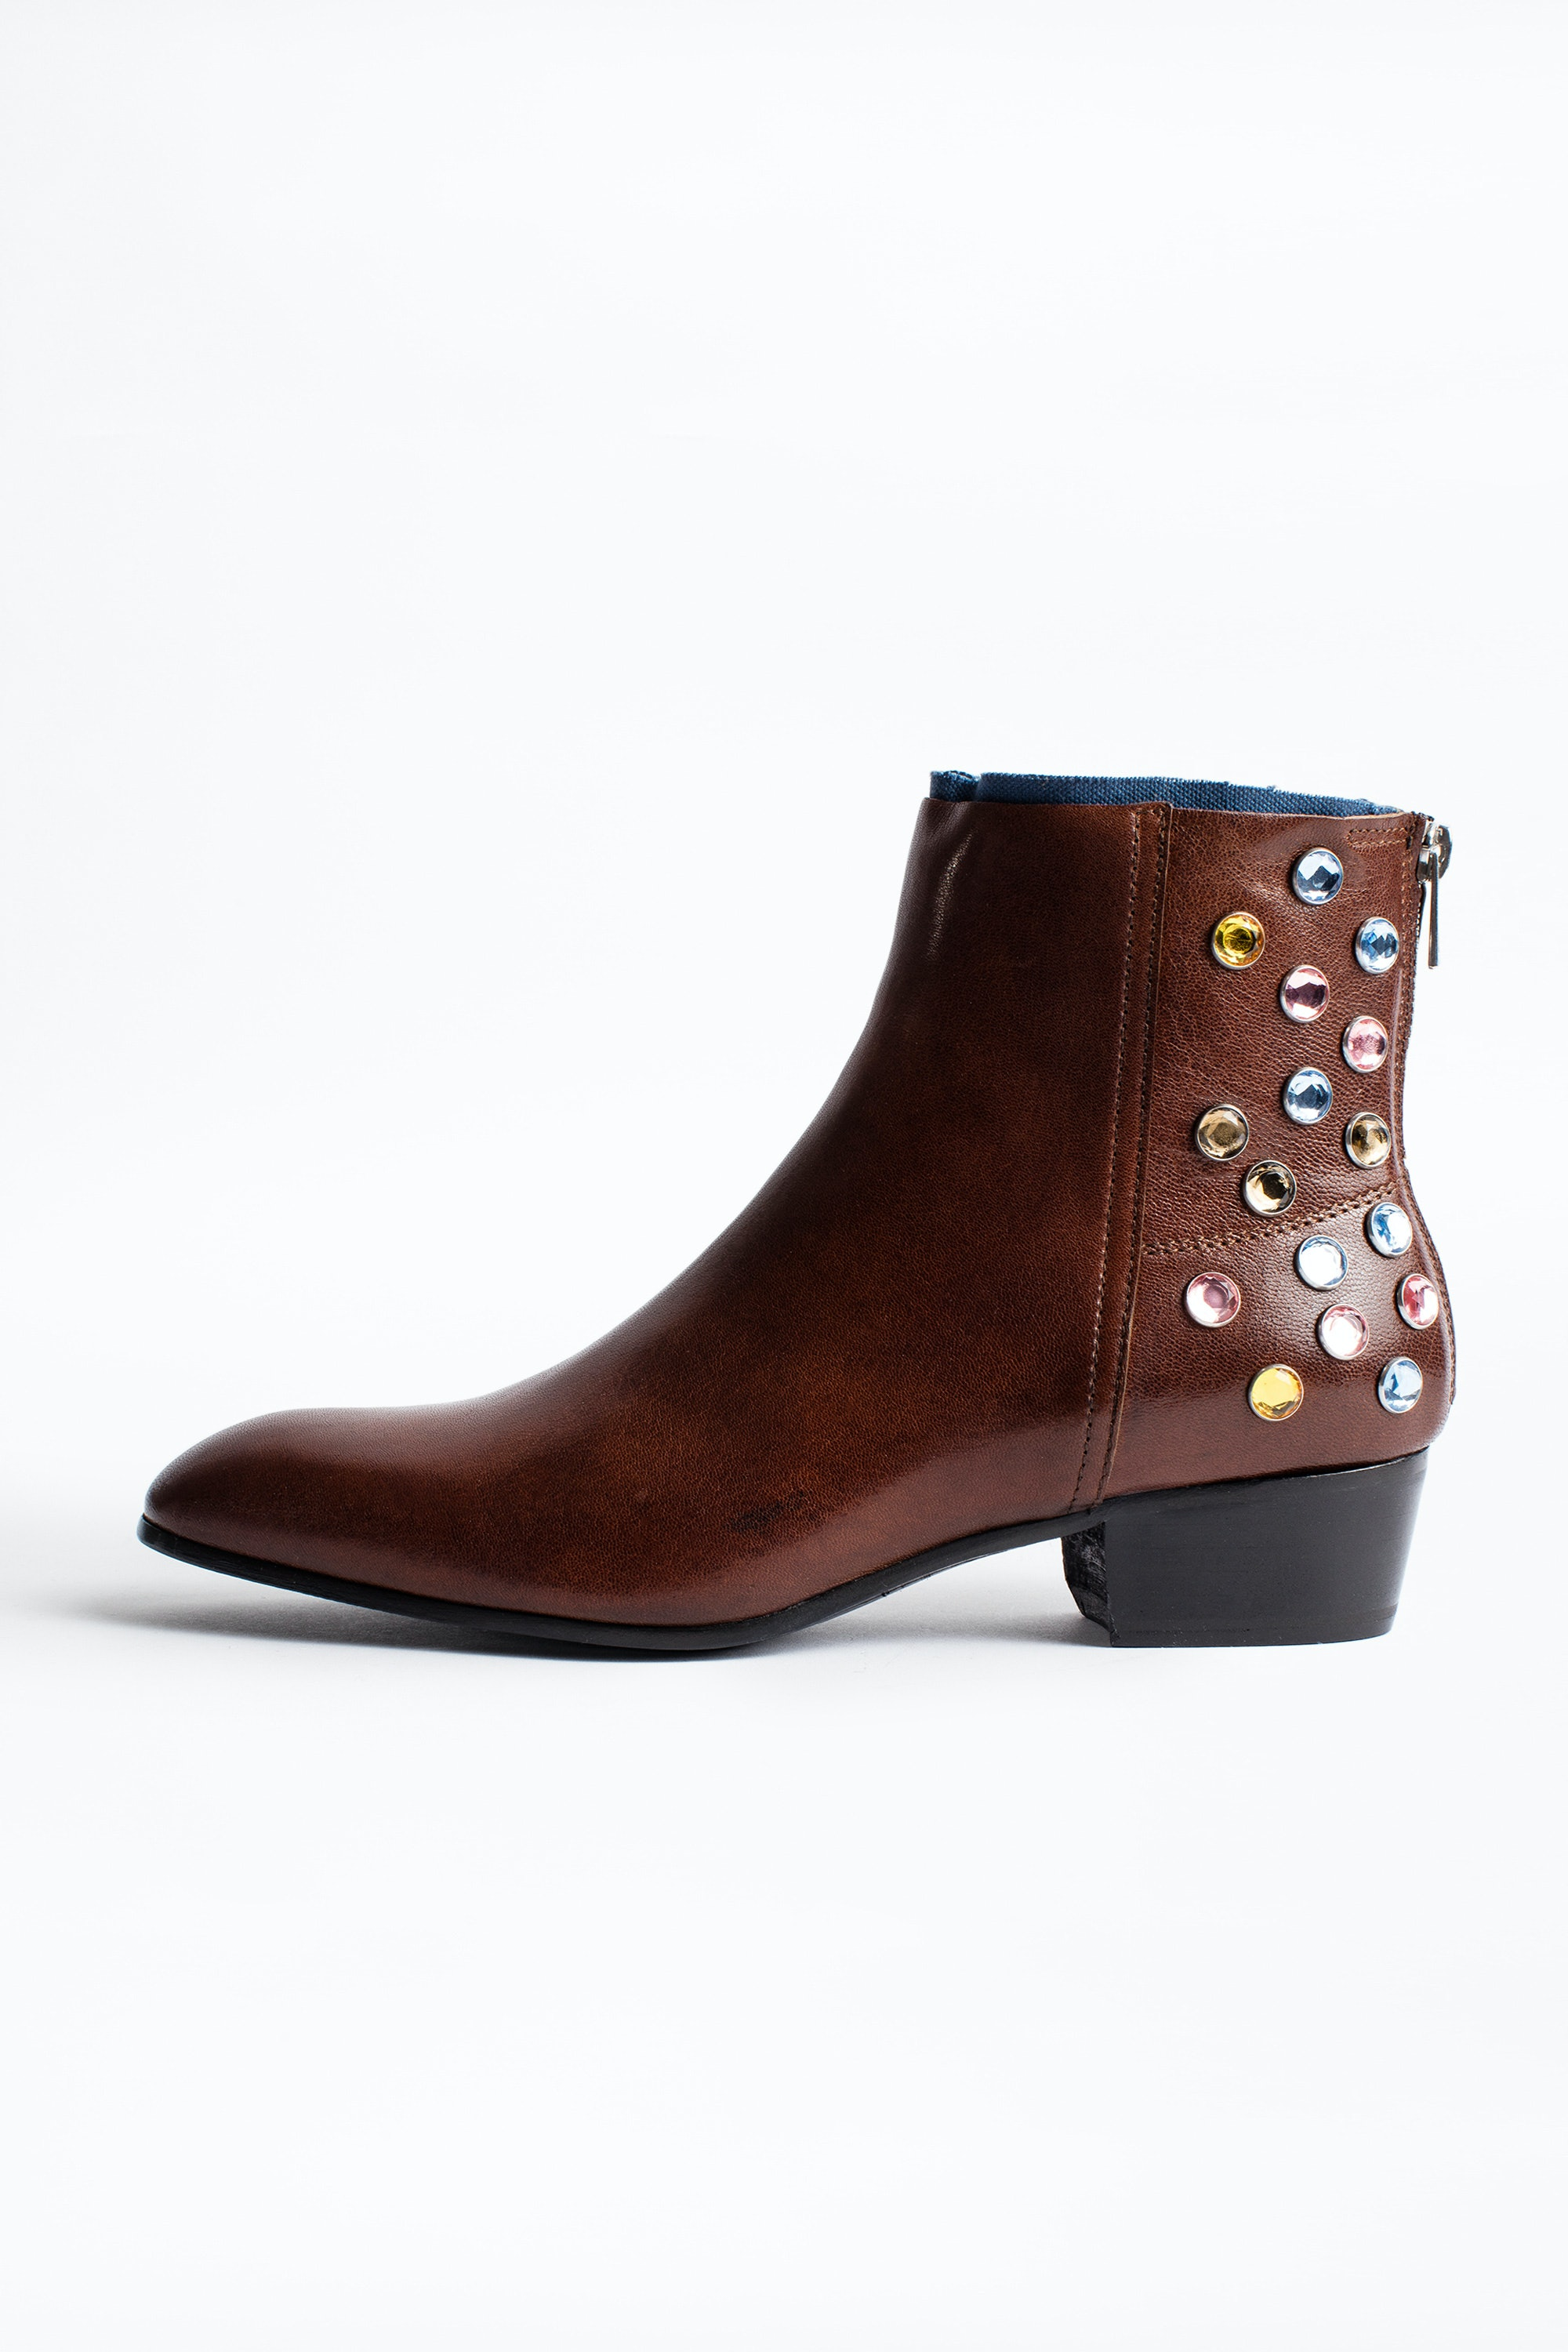 Sonlux Strass ankle boots